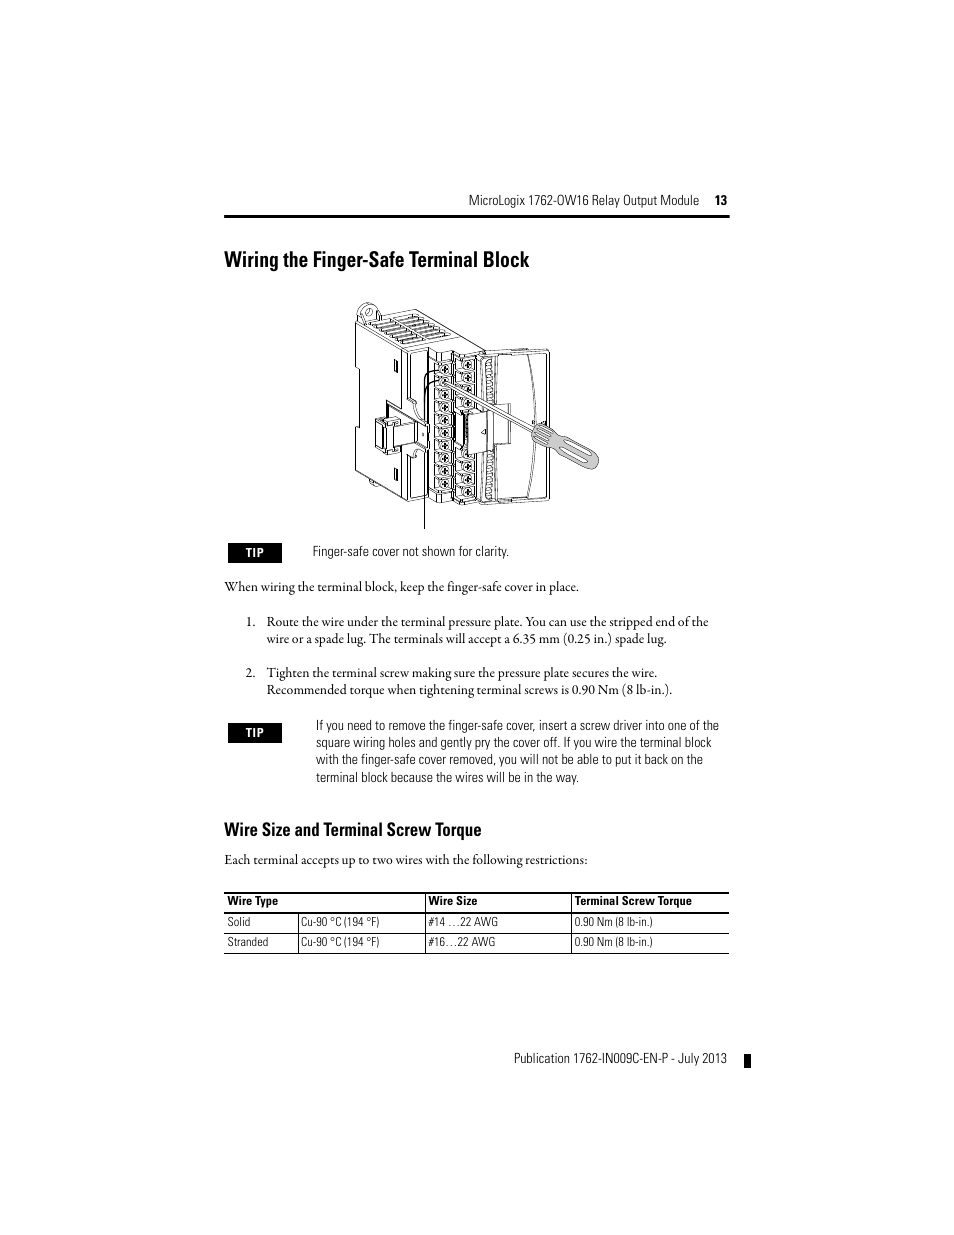 hight resolution of wire size and terminal screw torque wiring the finger safe terminal block rockwell automation 1762 ow16 relay output module user manual page 13 20